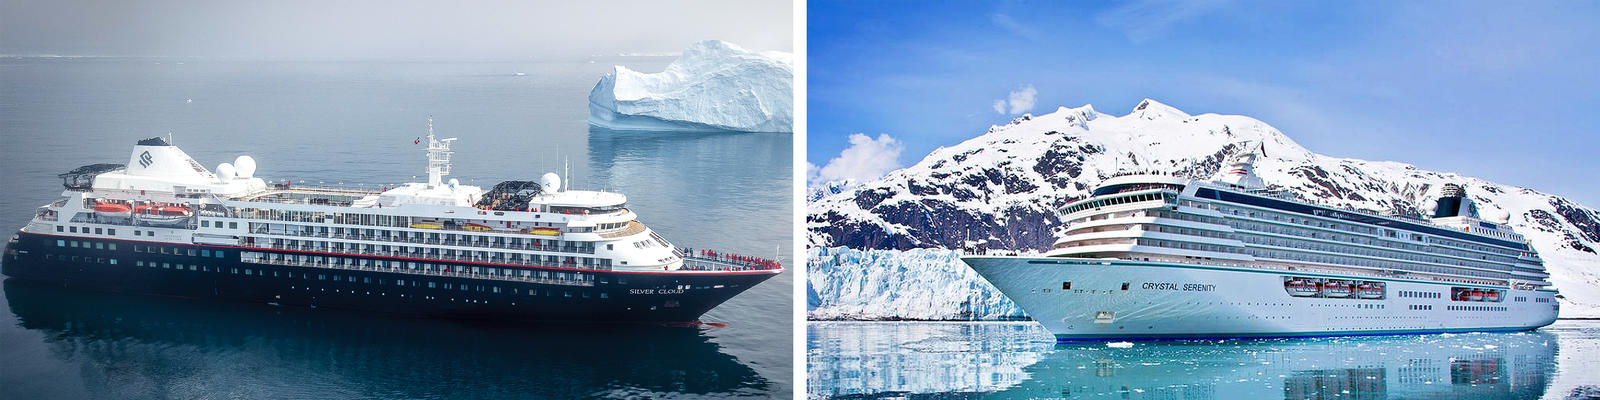 Silversea vs. Crystal Cruises (Photo: Silversea & Crystal)